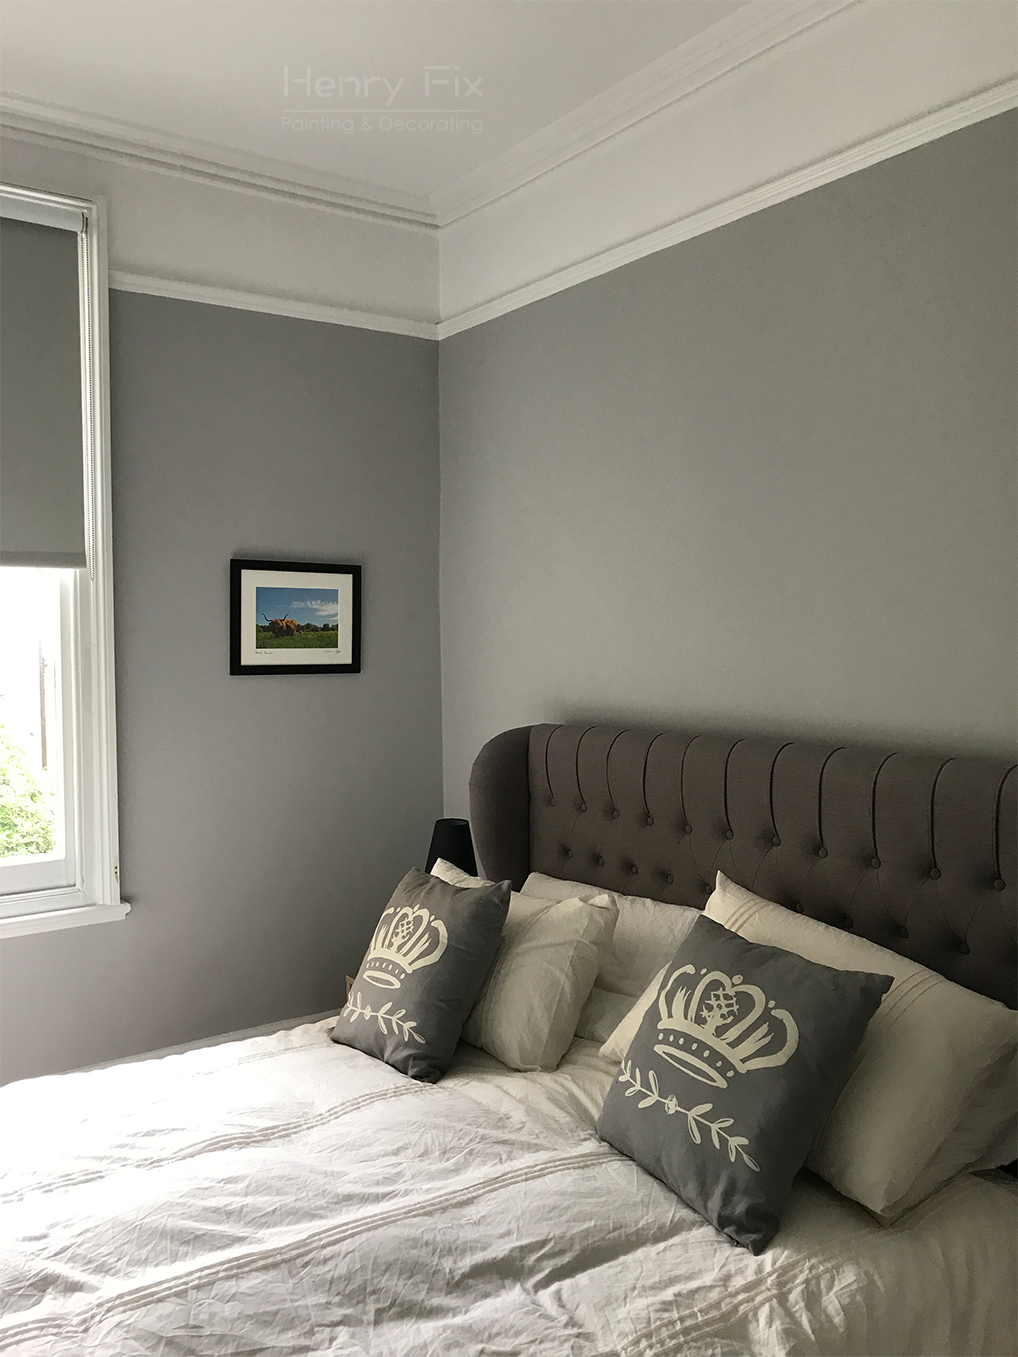 Dulux colour-matched to Wickes Nickel, Tikkurila Super White Cover